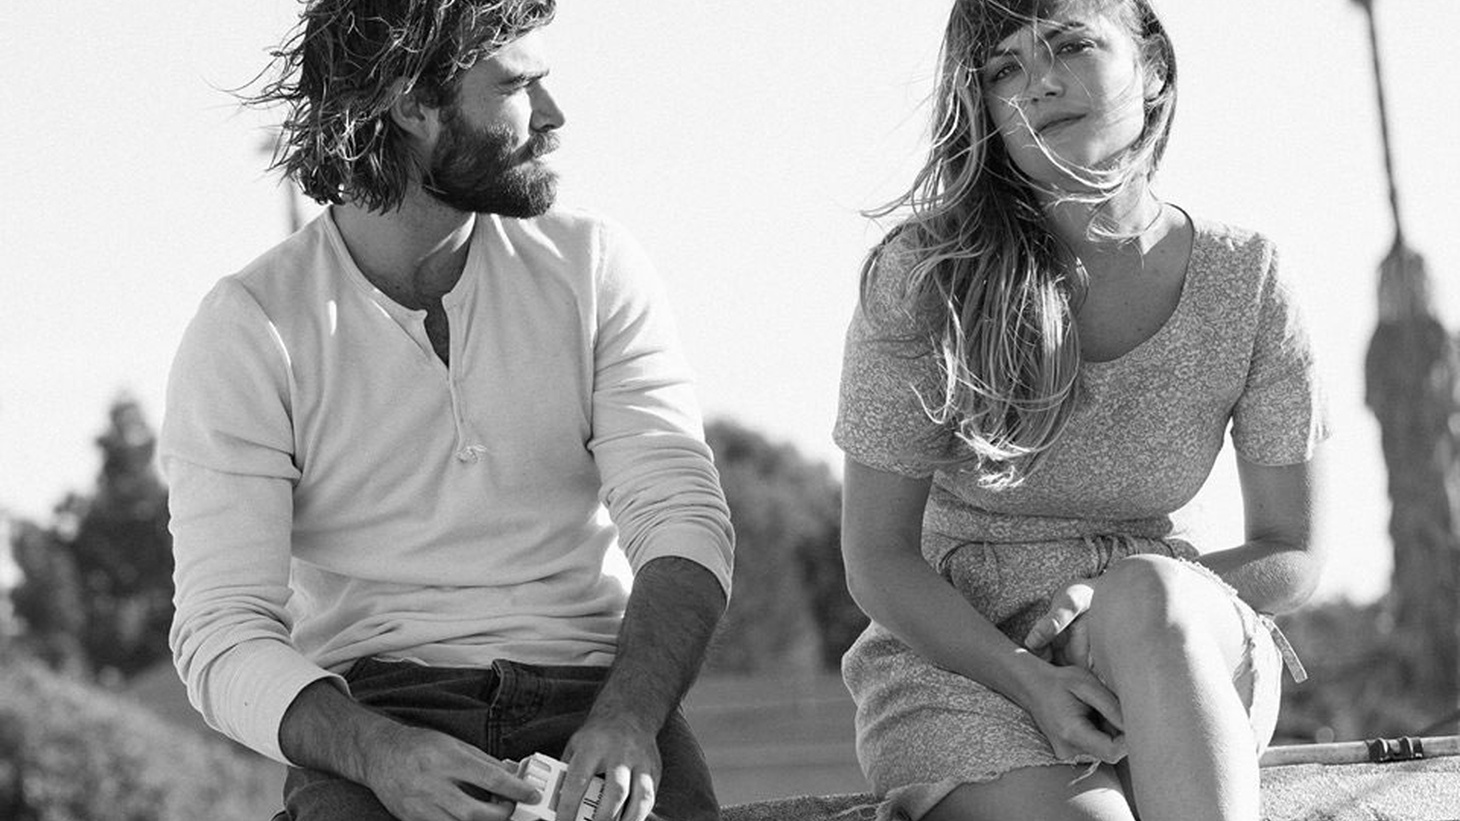 On their new self-titled album, Aussie songwriting siblings Angus and Julia Stone pump up the volume on their folky tunes thanks to production help from Rick Rubin.